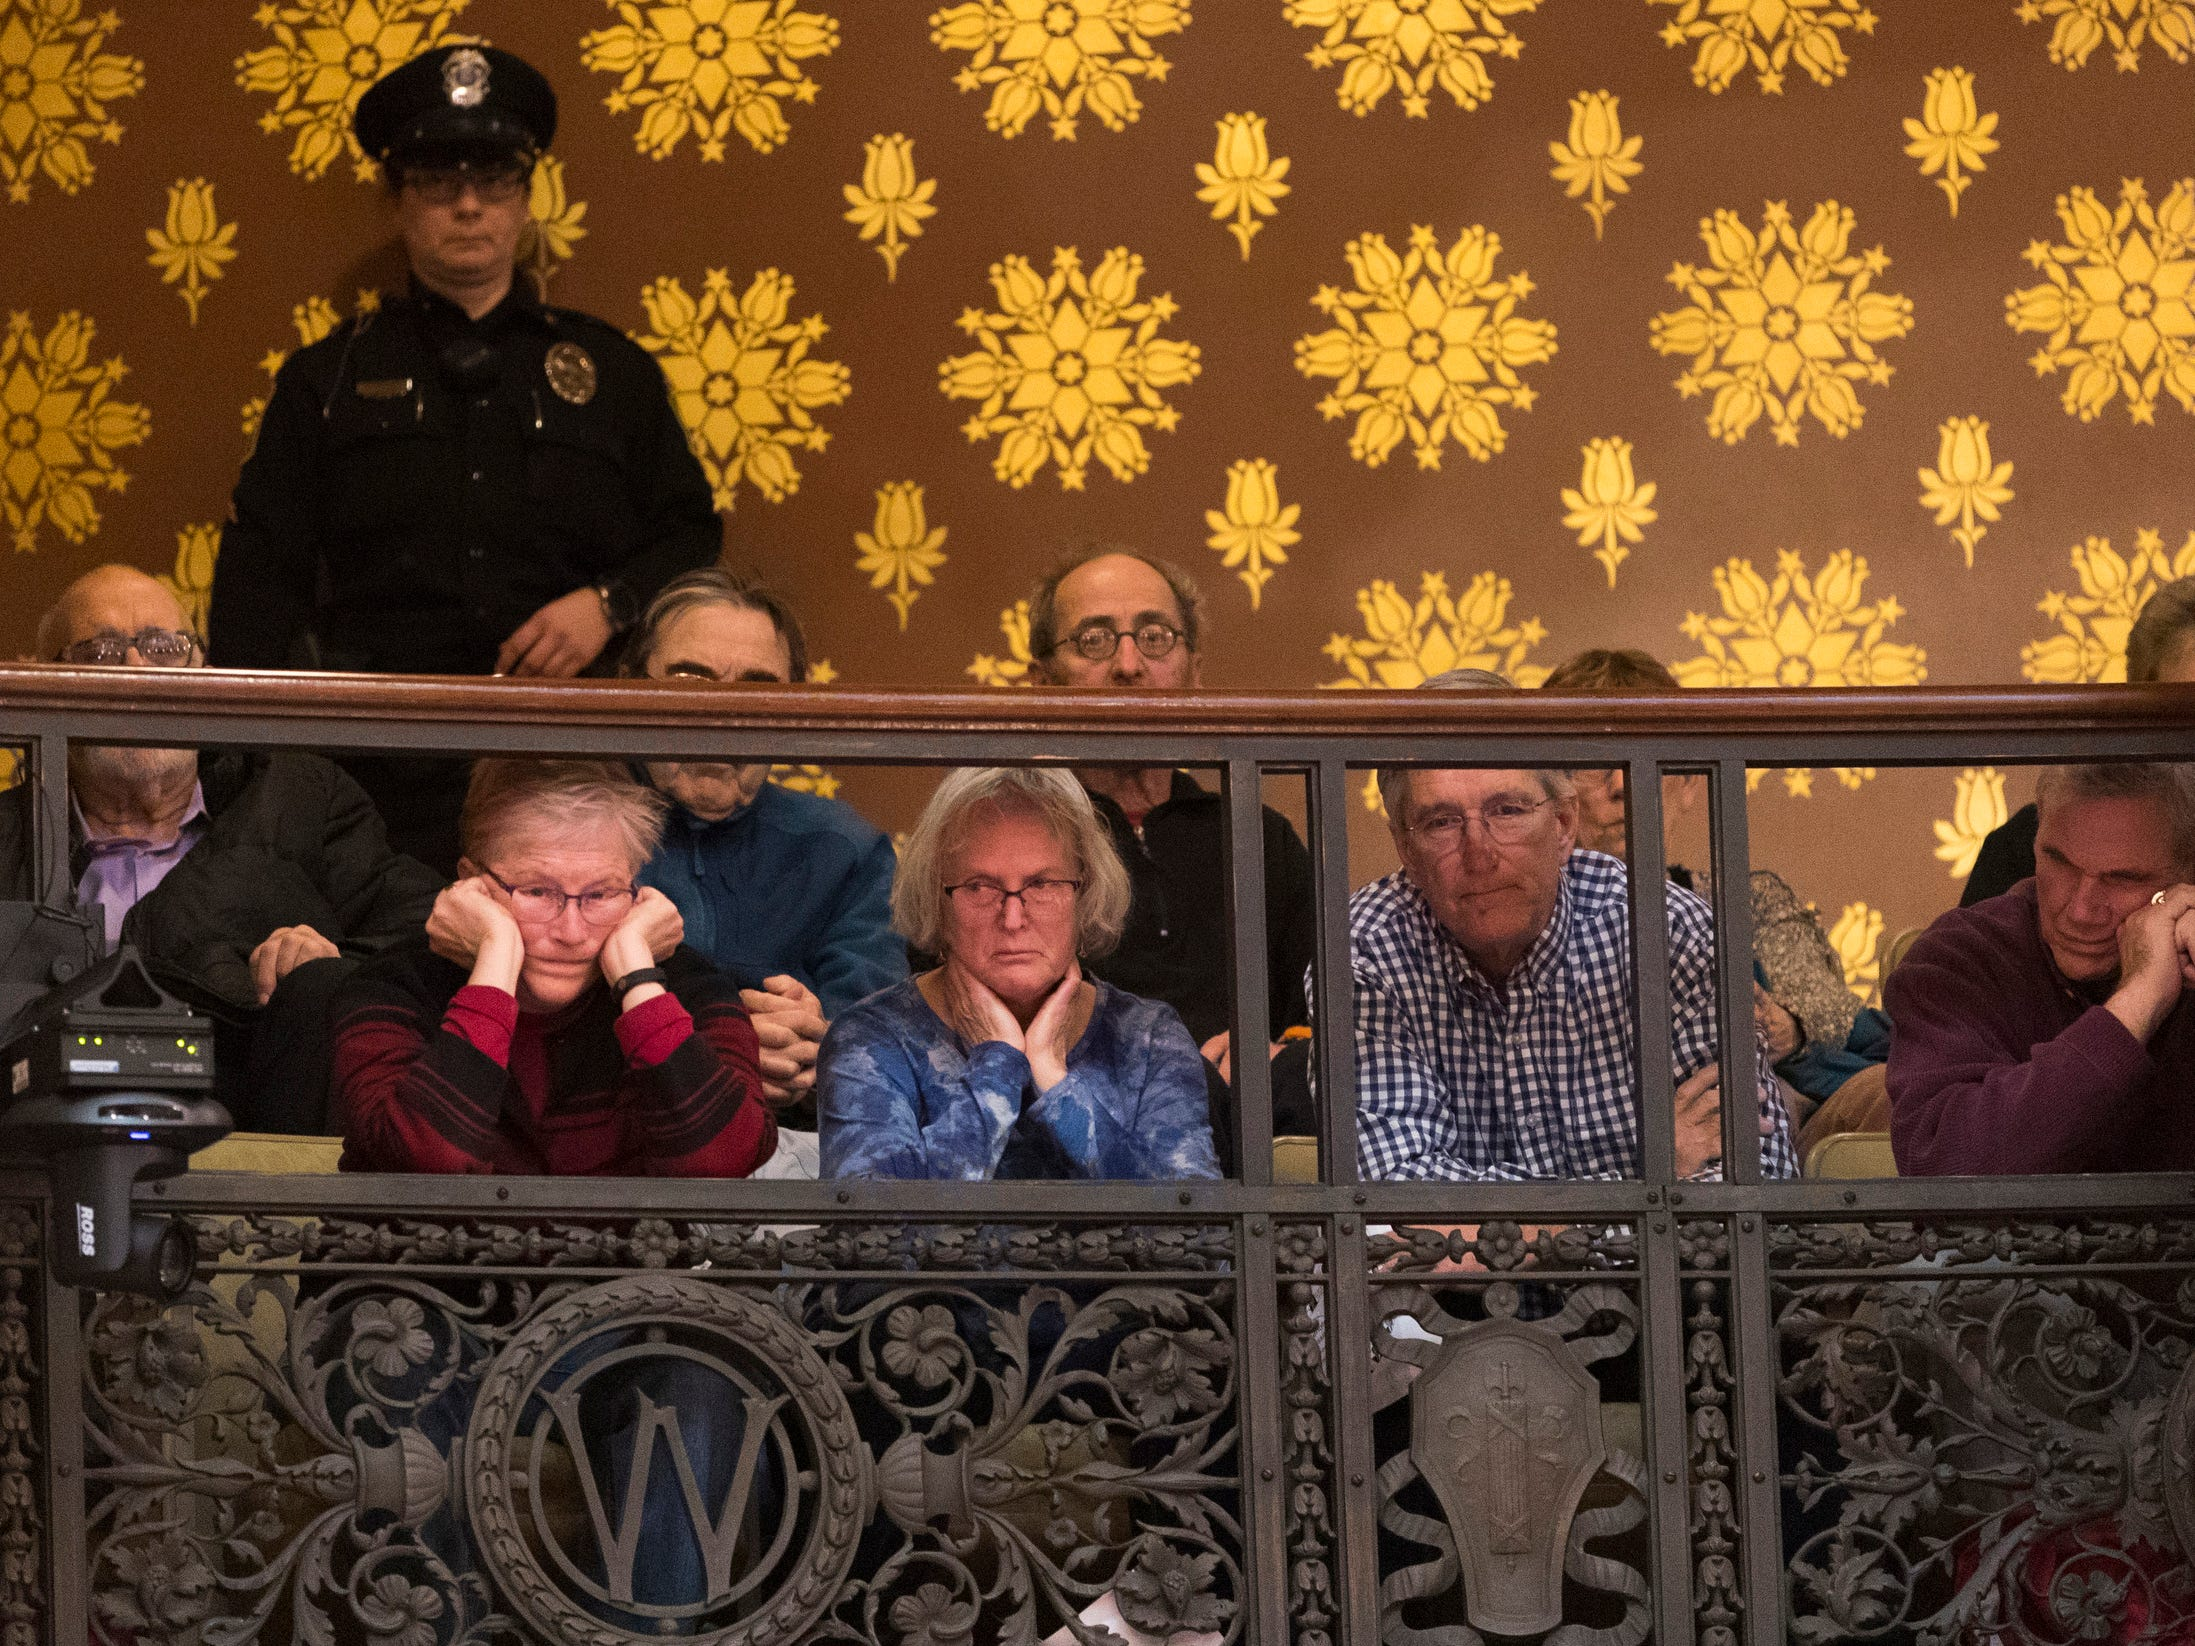 Members of the gallery listen to debate before it was ordered cleared Tuesday.